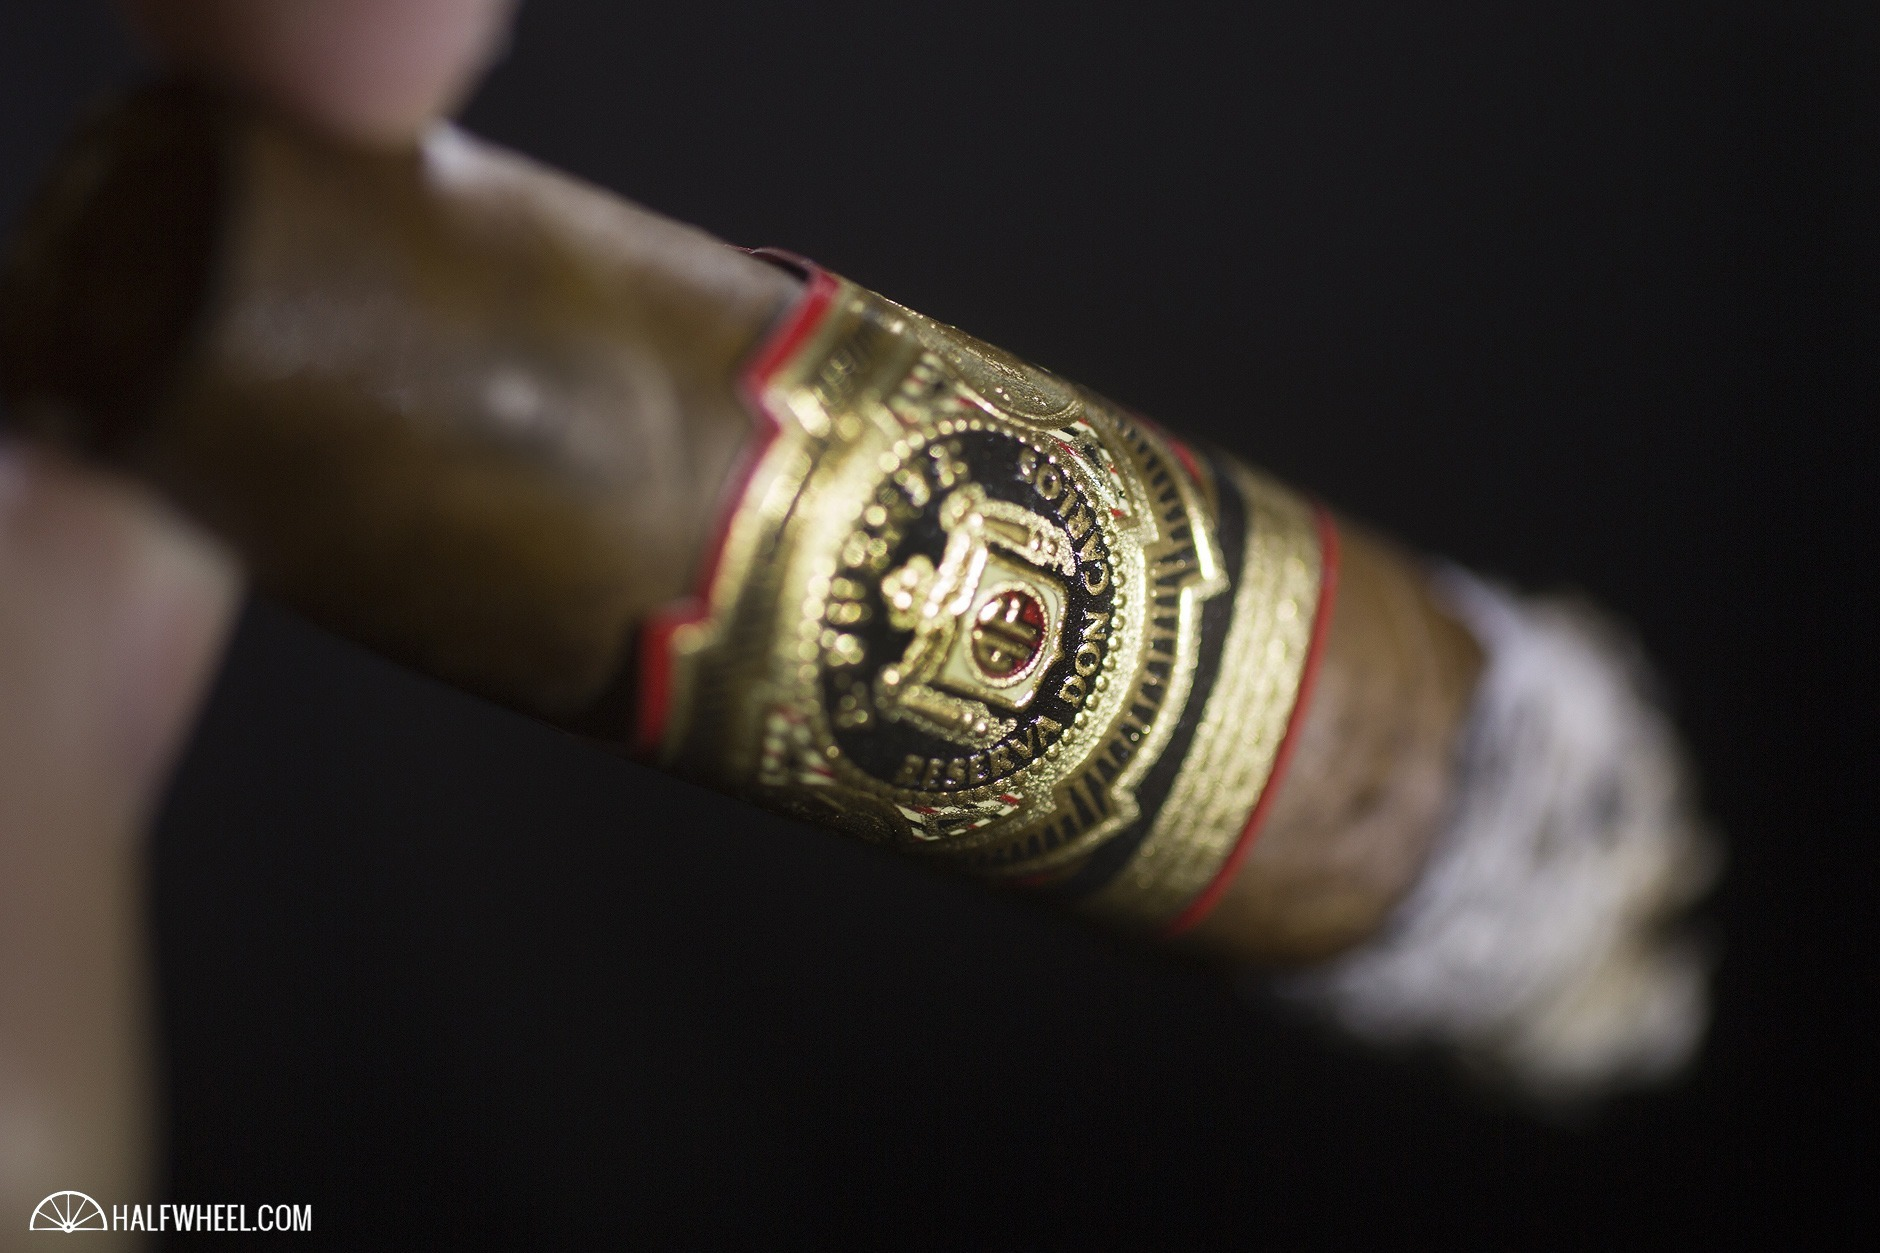 Arturo Fuente Don Carlos Eye of the Shark 3